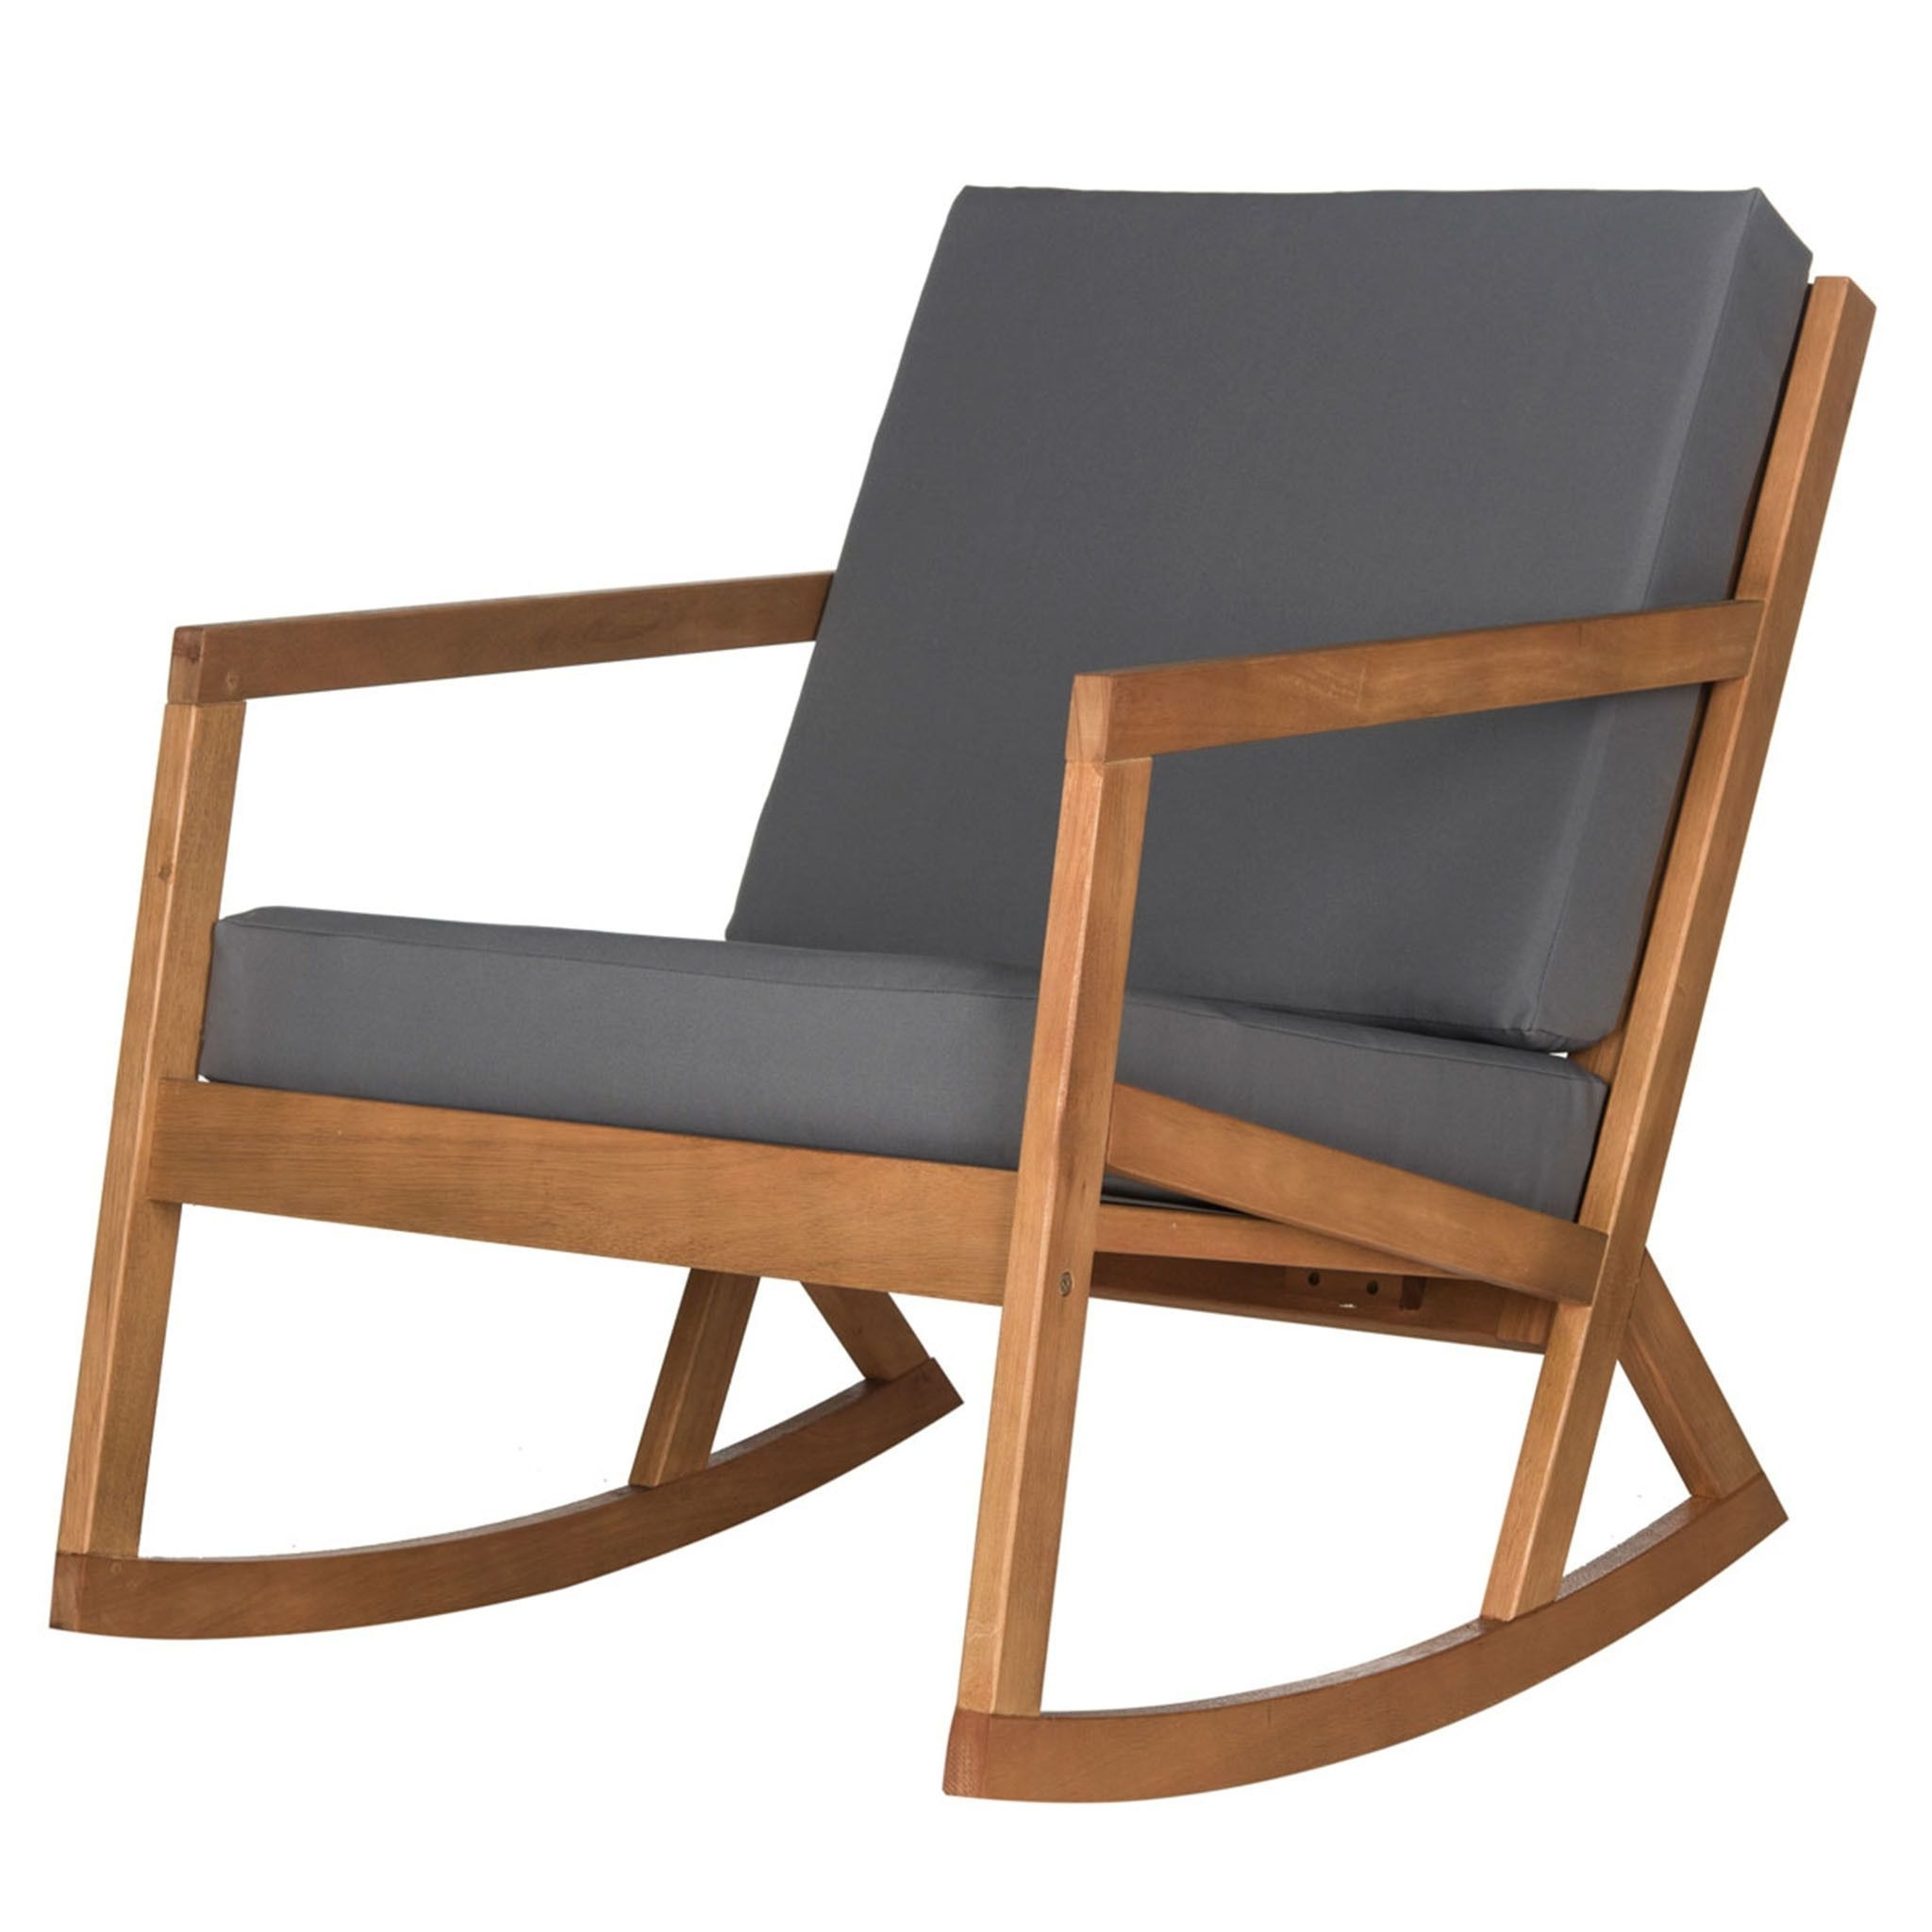 Patio Rocking Chairs With Covers Within Recent Vernon Outdoor Rocking Chair (View 10 of 20)